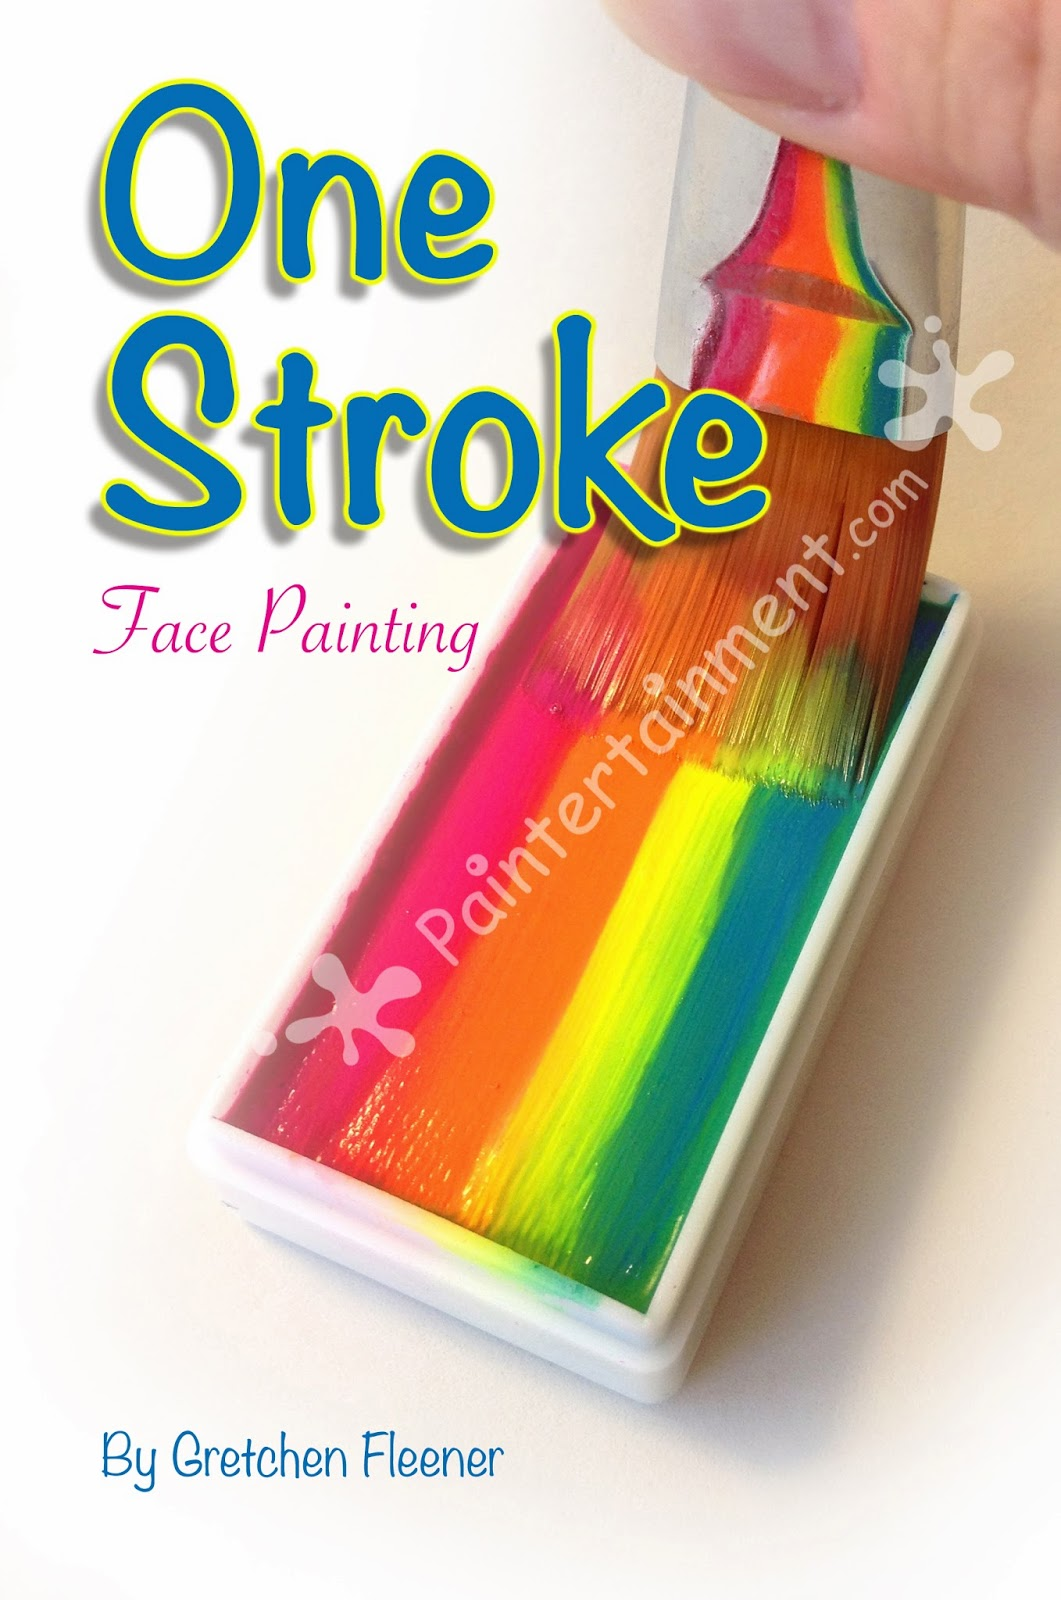 Book Cover Watercolor Artists : Paintertainment pre order our new book one stroke face